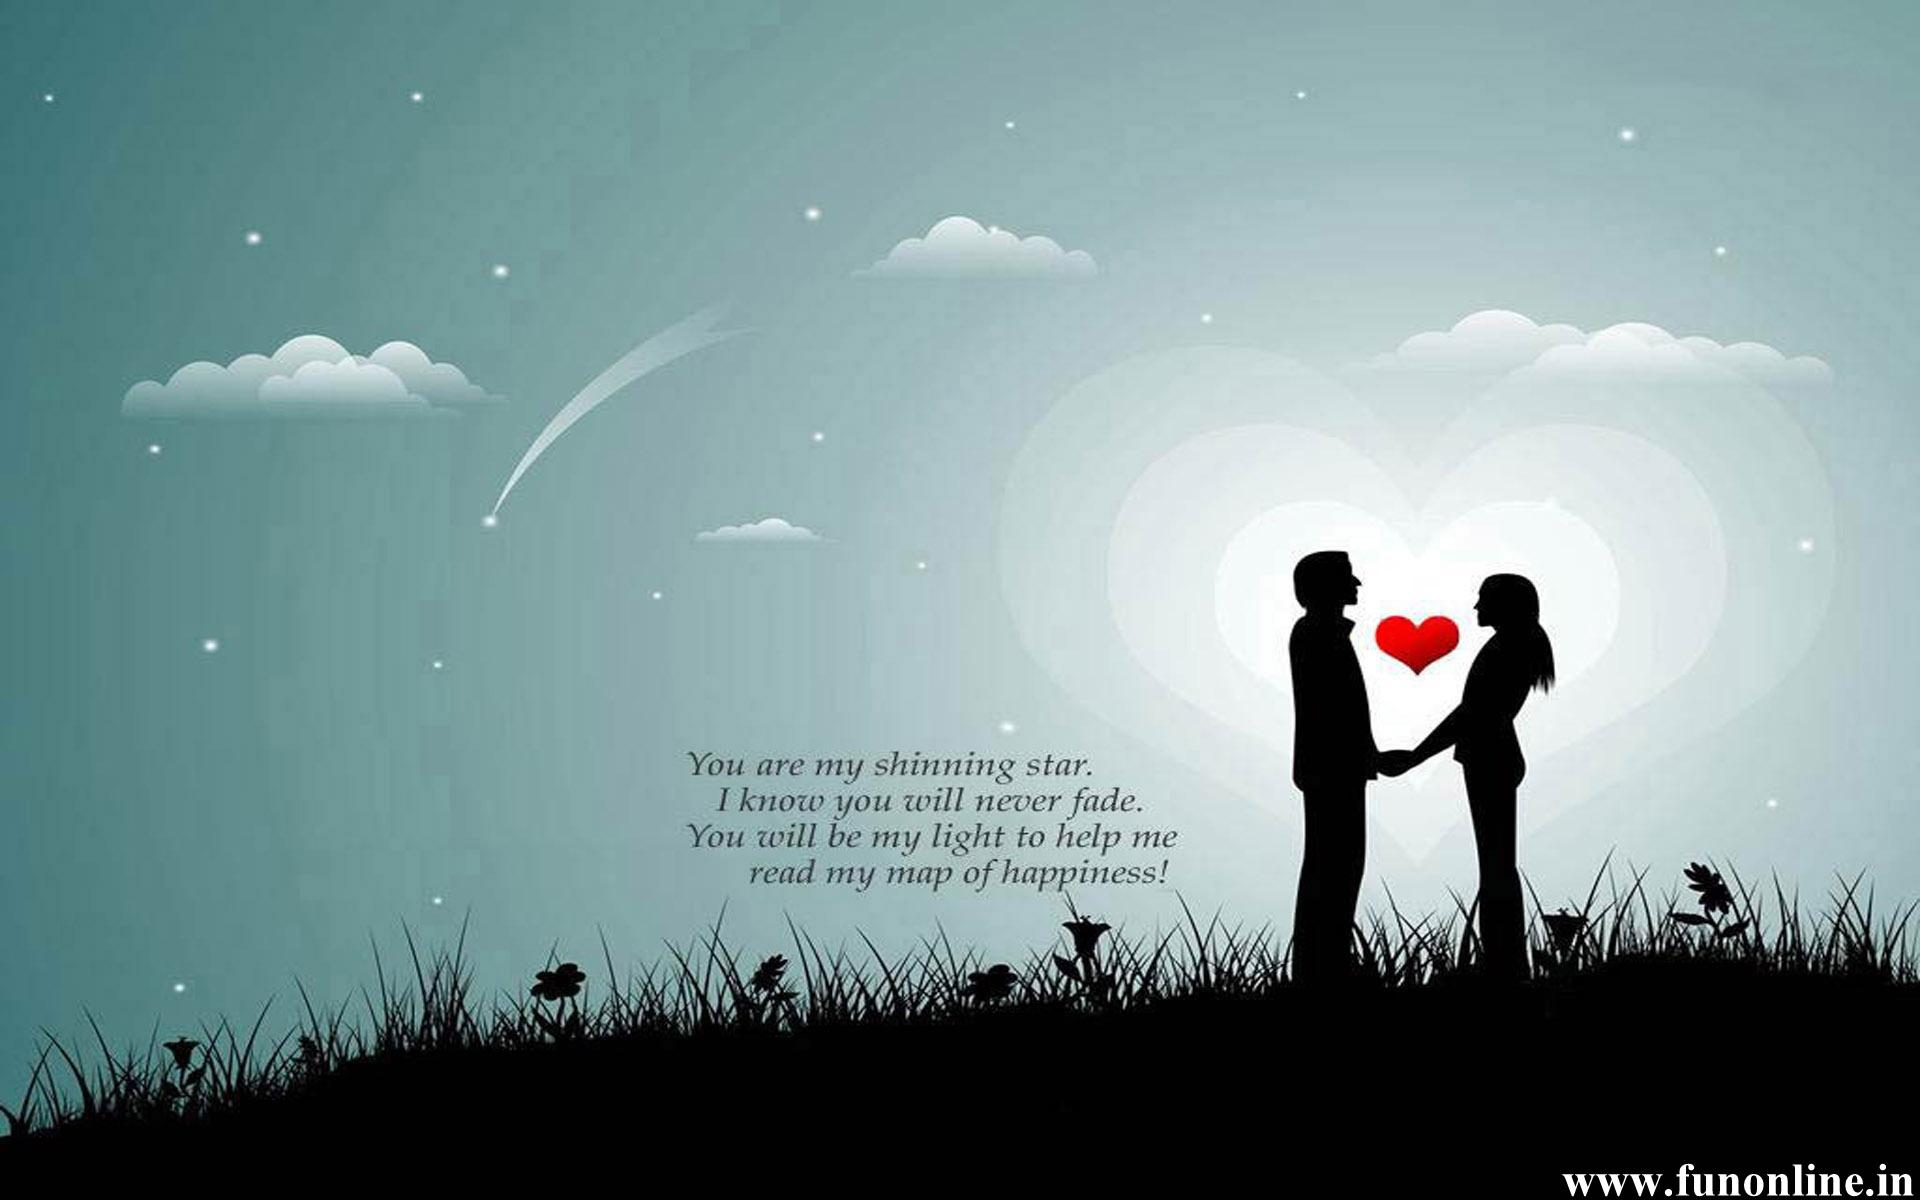 Gm My Love Wallpaper : My Love Wallpapers - WallpaperSafari